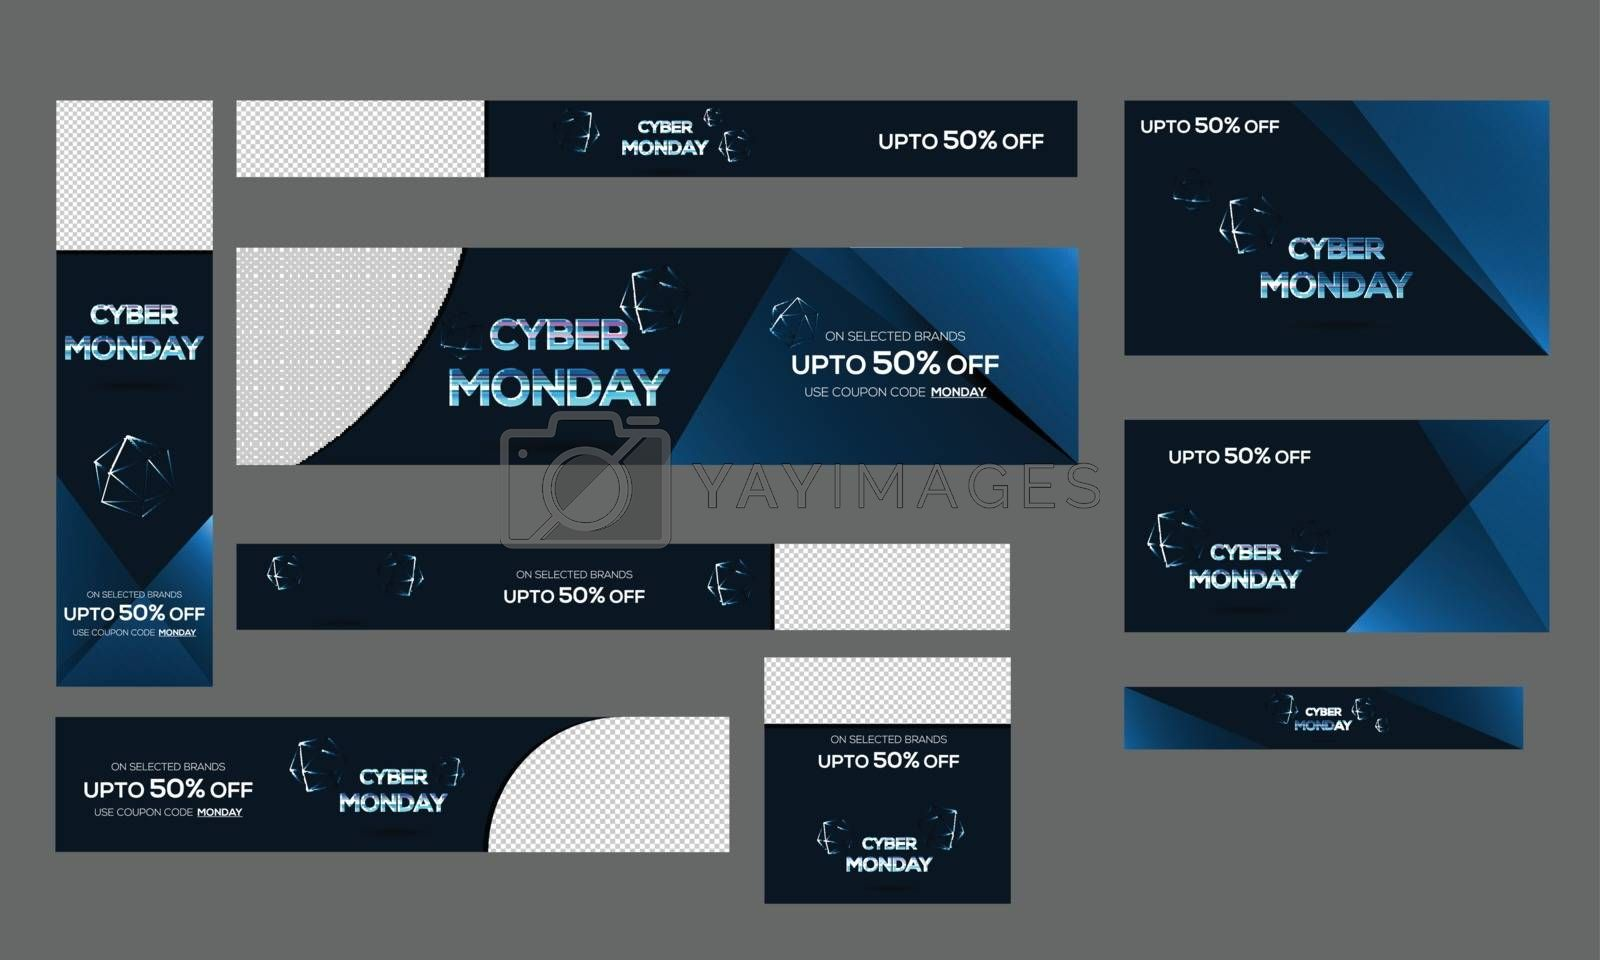 Collection of Cyber Monday sale banner, poster and template design with 50% discount offers and space for your product image.